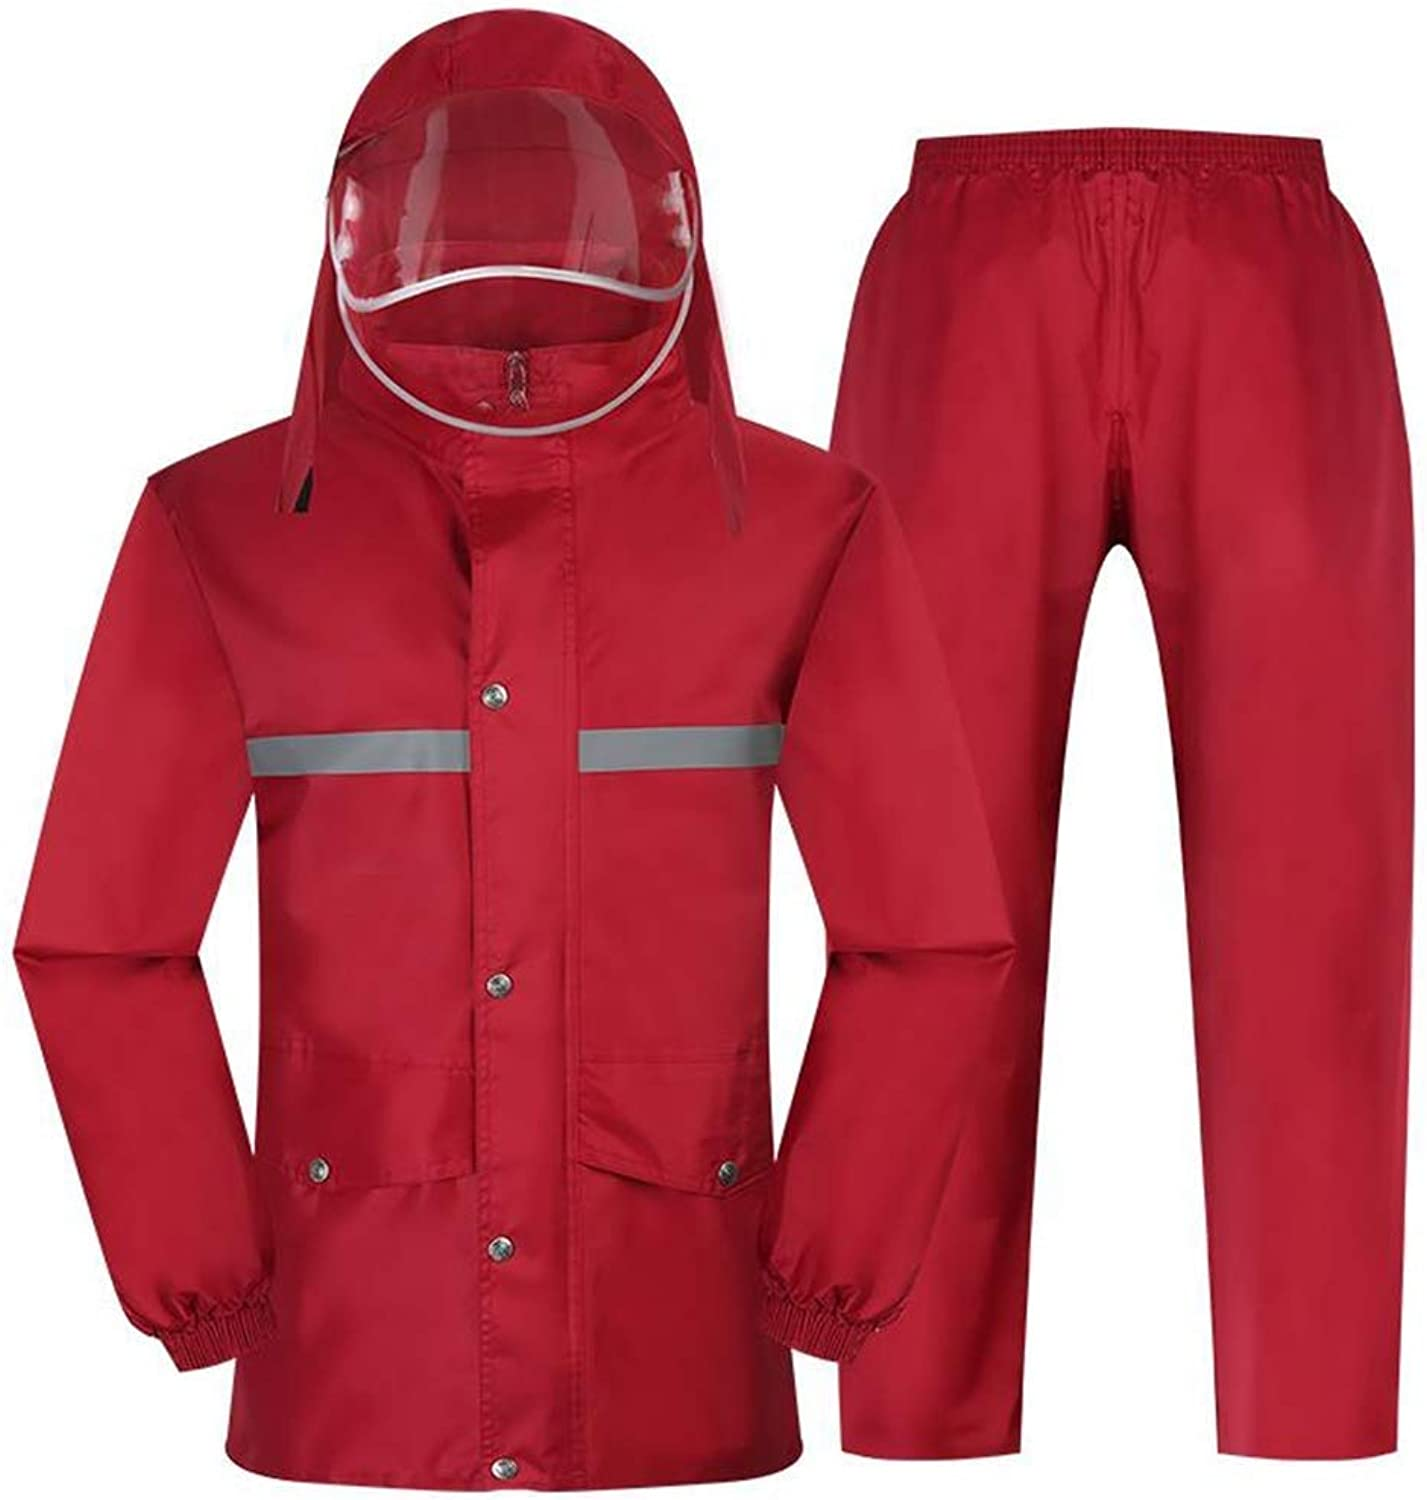 YangMi Split Raincoat Raincoats Women's Suit Raincoat Transparent Hat Grid Lining Design Waterproof and Breathable Highlight Reflective Strip Rainy Day Out Cycling Red Multiple Sizes